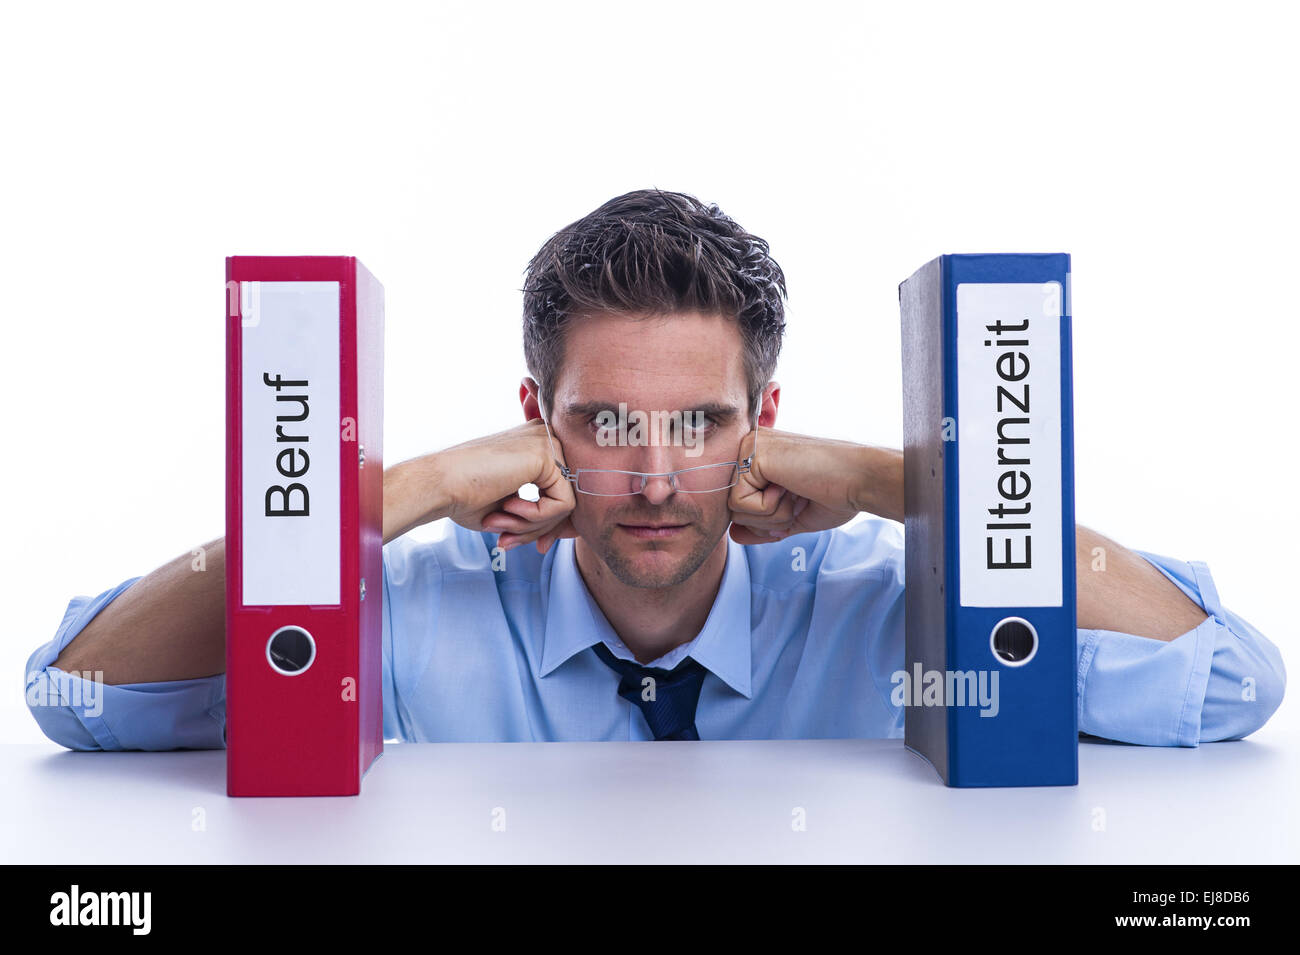 Parental leave or professional - Stock Image